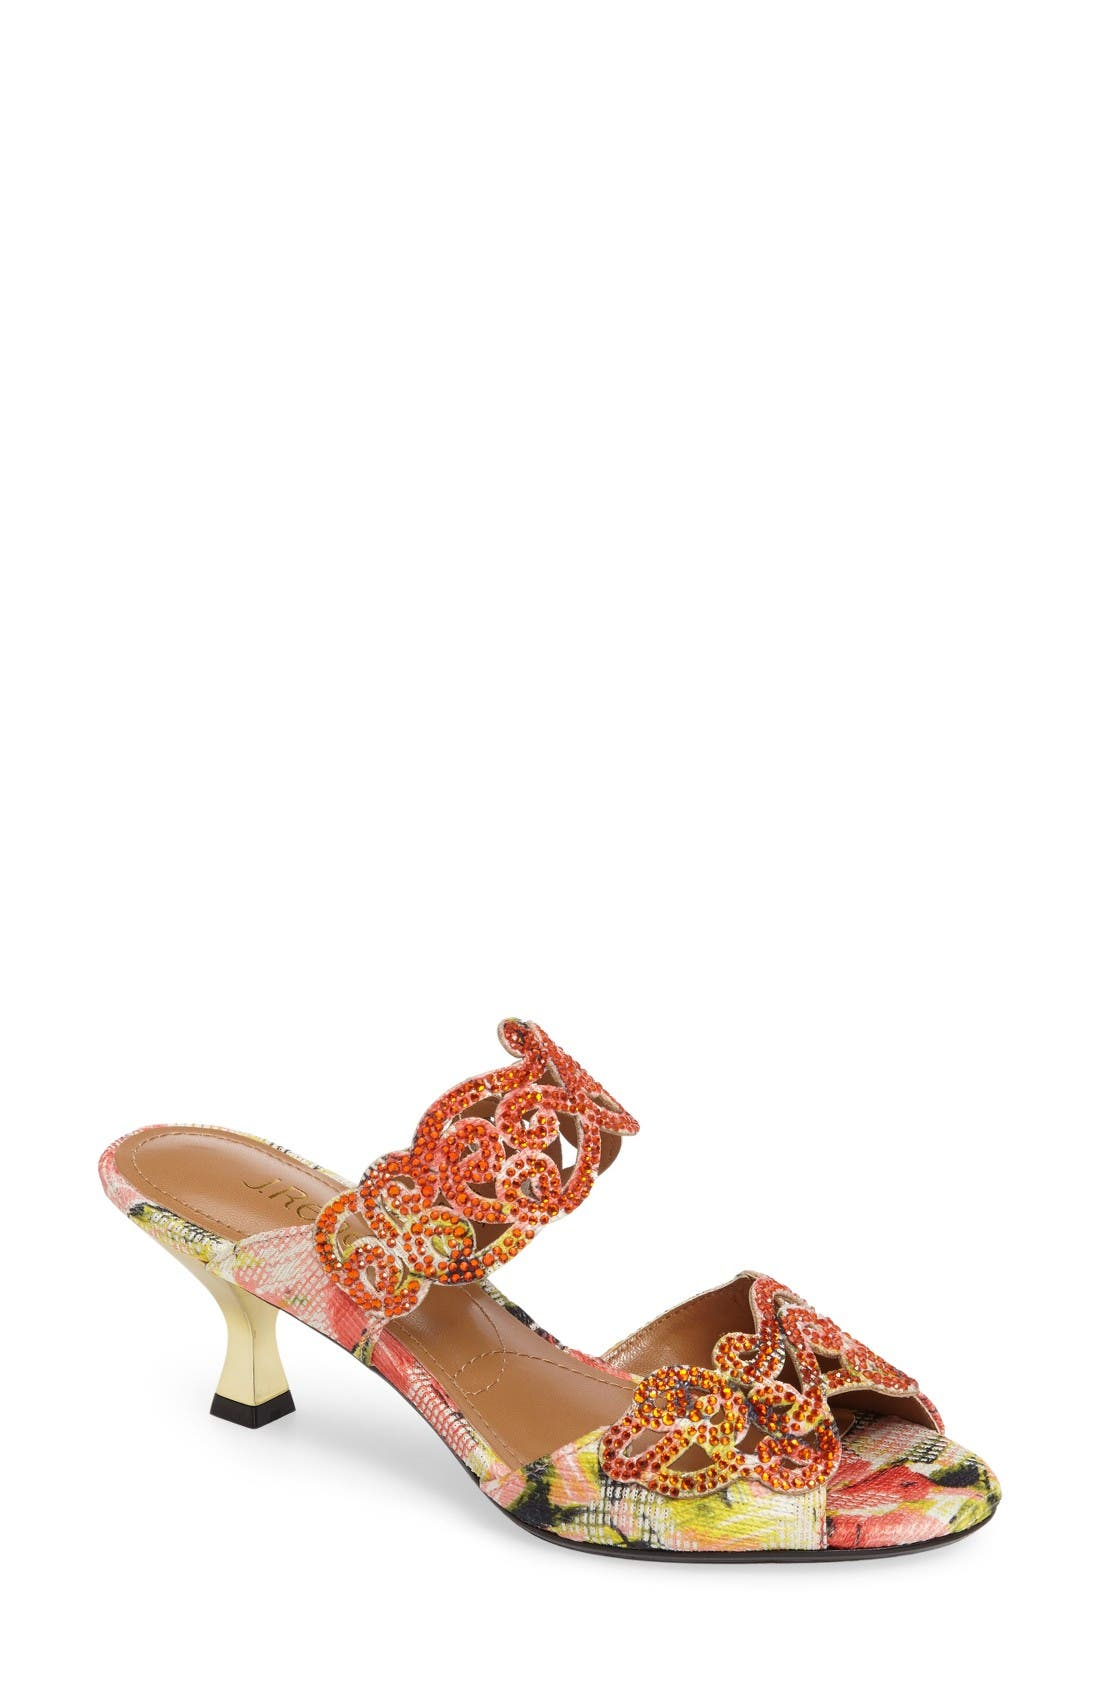 'Francie' Evening Sandal,                             Main thumbnail 1, color,                             Coral Multi Fabric